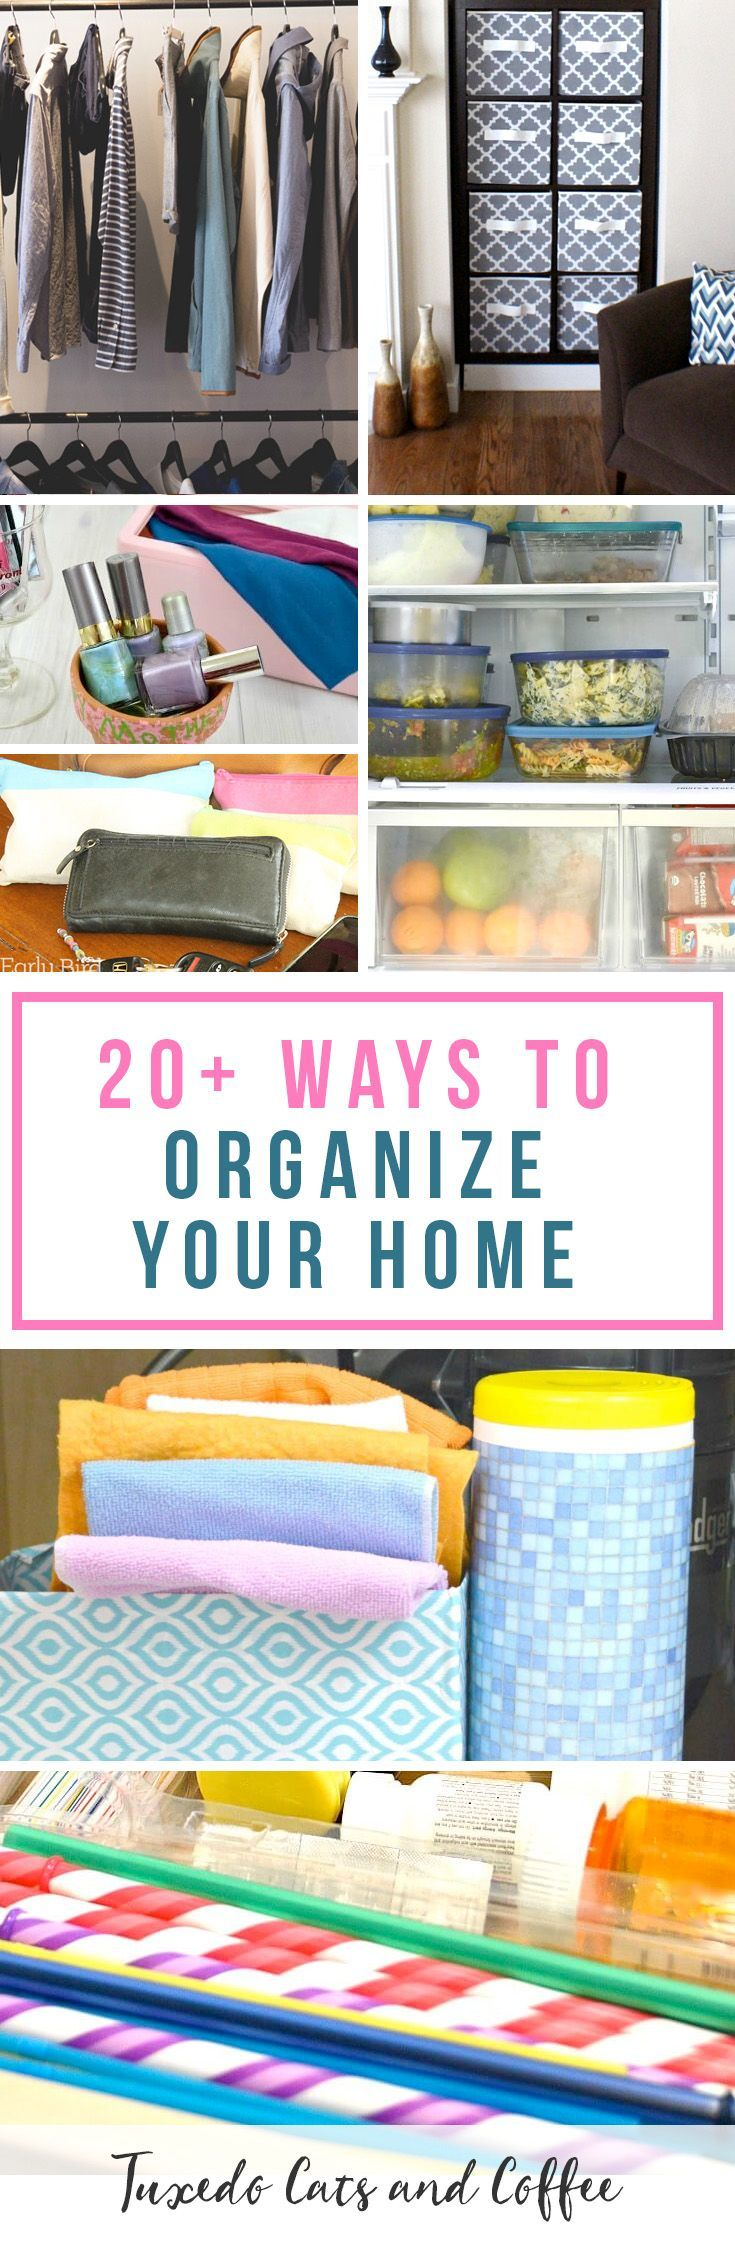 Tips For Organizing Your Home on tips on organizing office files, tips for health, tips for family, tips for friends, hidden spaces in your home, tips to organize your bedroom, organizing bills and paperwork at home, tips for relationships, organizing office space at home, tips for marriage, spring cleaning your home, tips for parenting, tips for cooking, de clutter your home, redesign your home, tips for goal setting, tips for spring cleaning, tips on getting organized, decorating your home, tips for food,